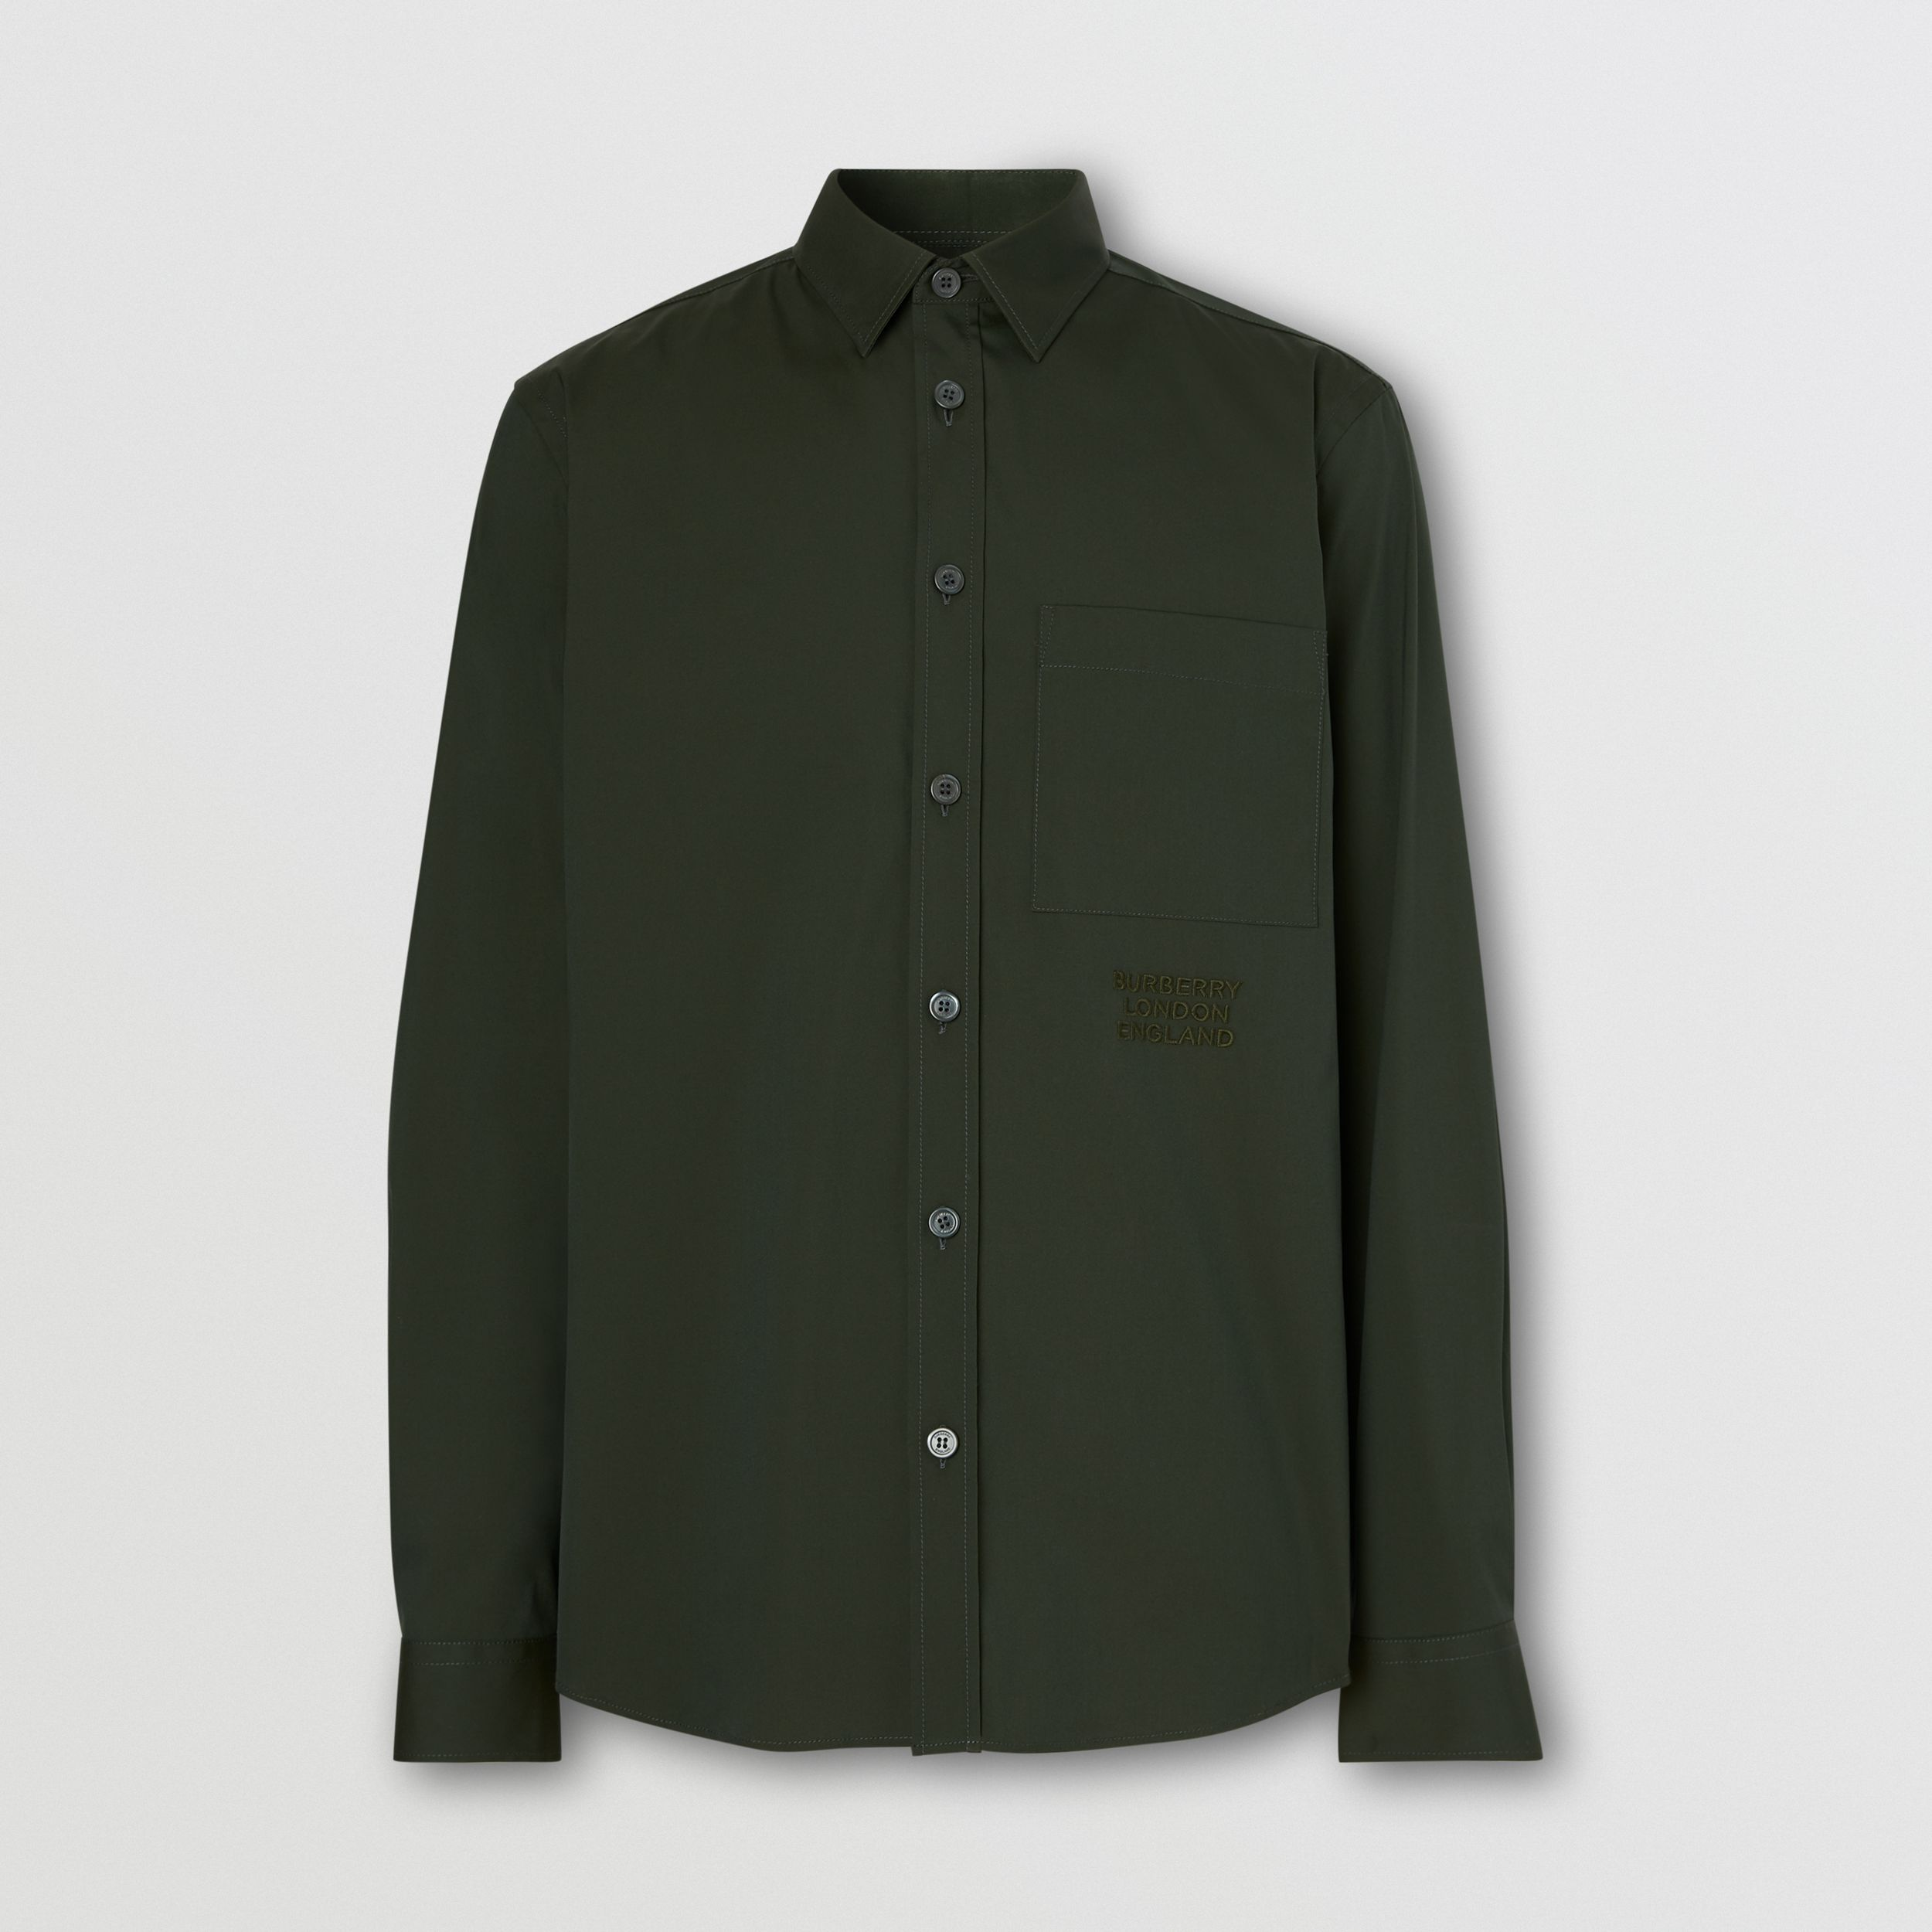 Embroidered Logo Cotton Blend Shirt in Forest Green - Men | Burberry - 4